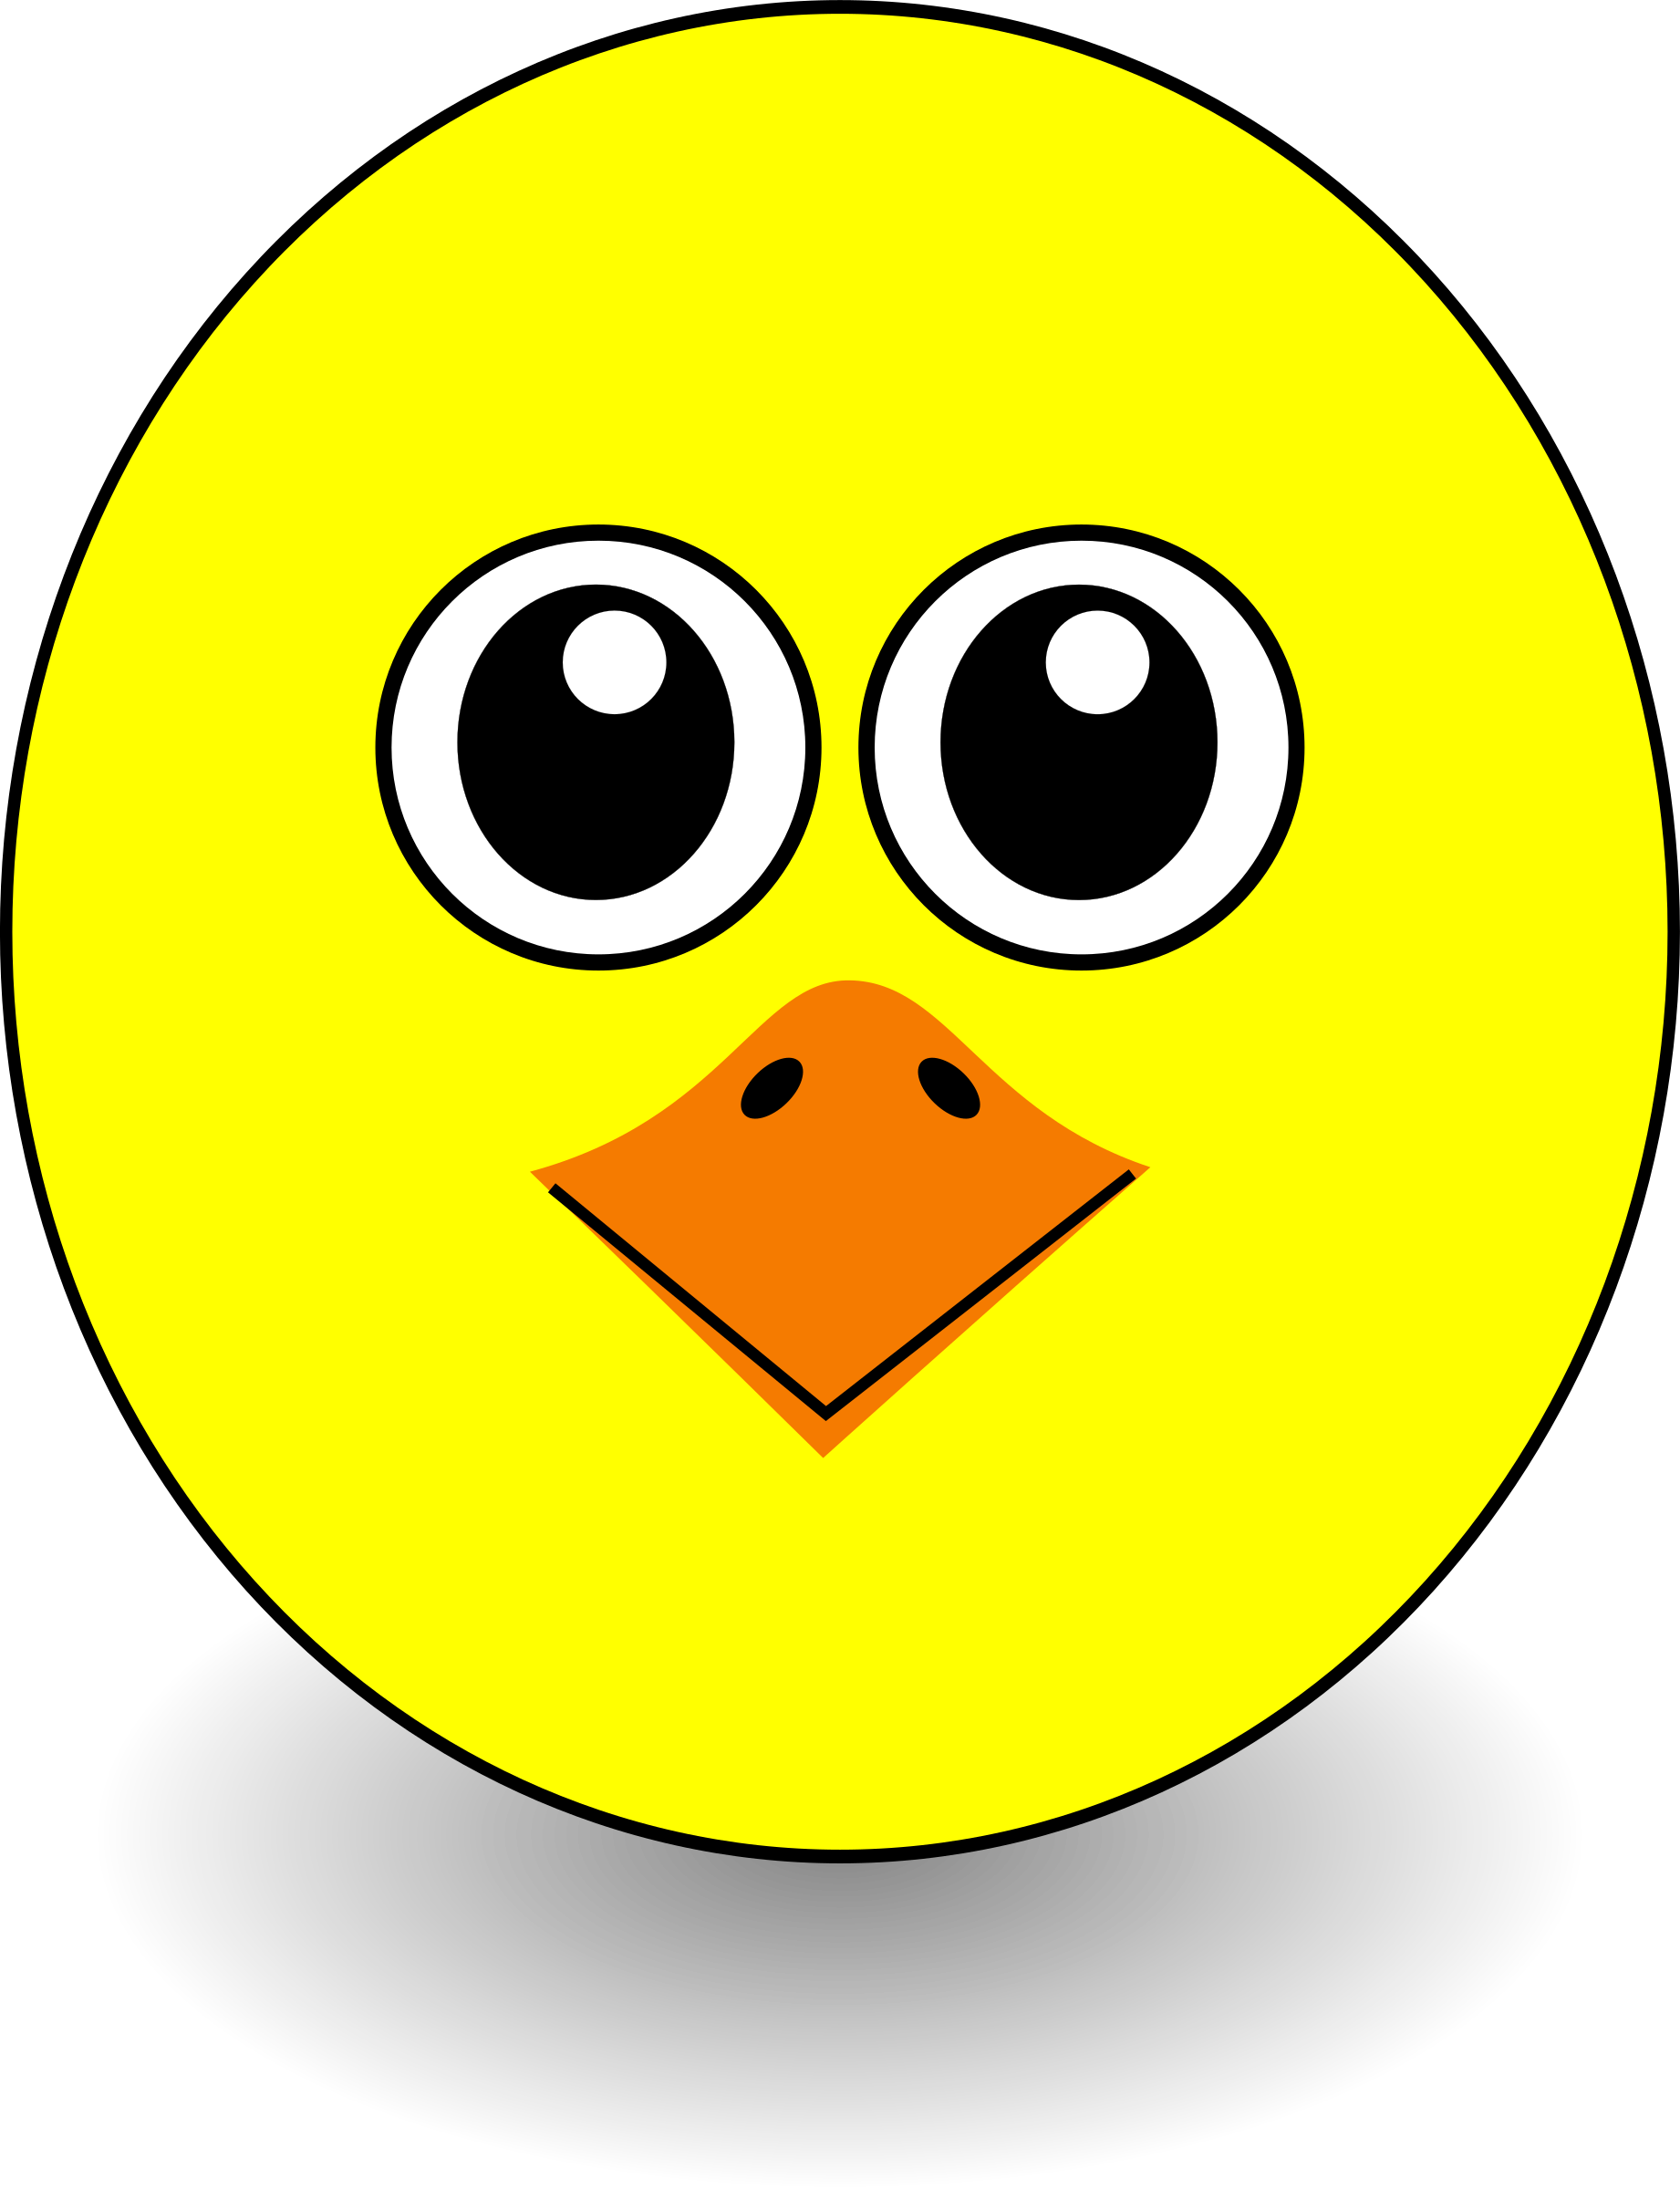 Funny Chick Face Cartoon by palomaironique